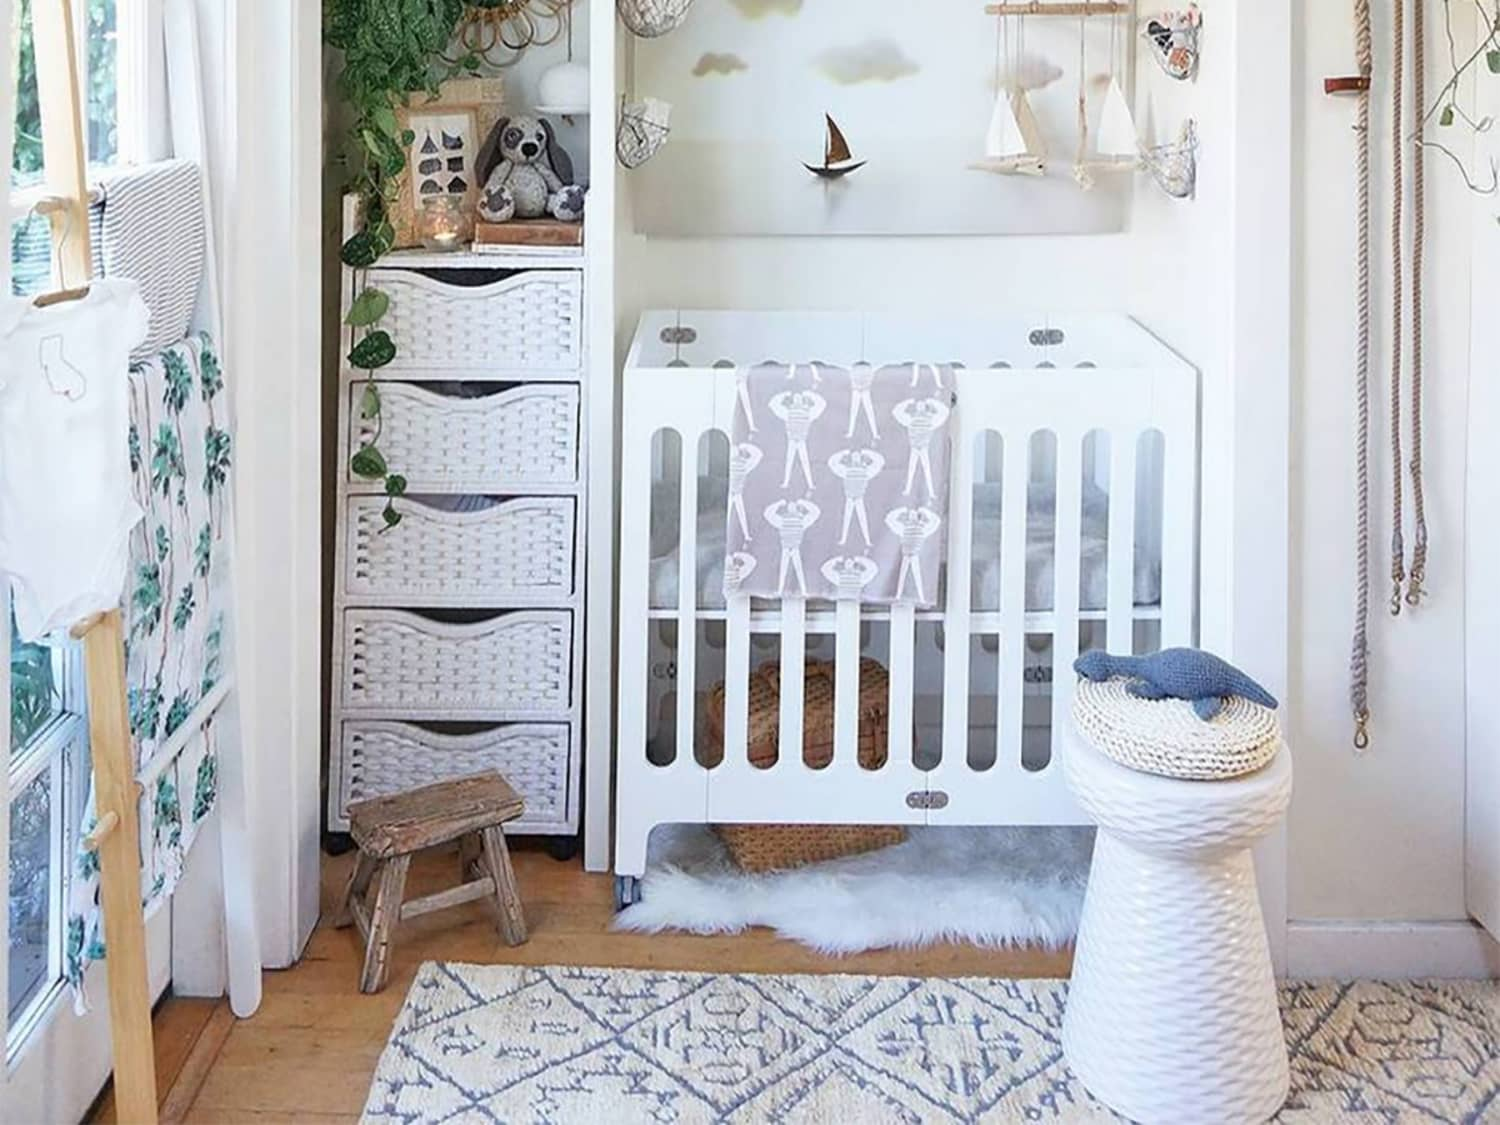 Suburbs Mama Nursery In Master Bedroom: How To Fit A Nursery Into Your Very Small Space